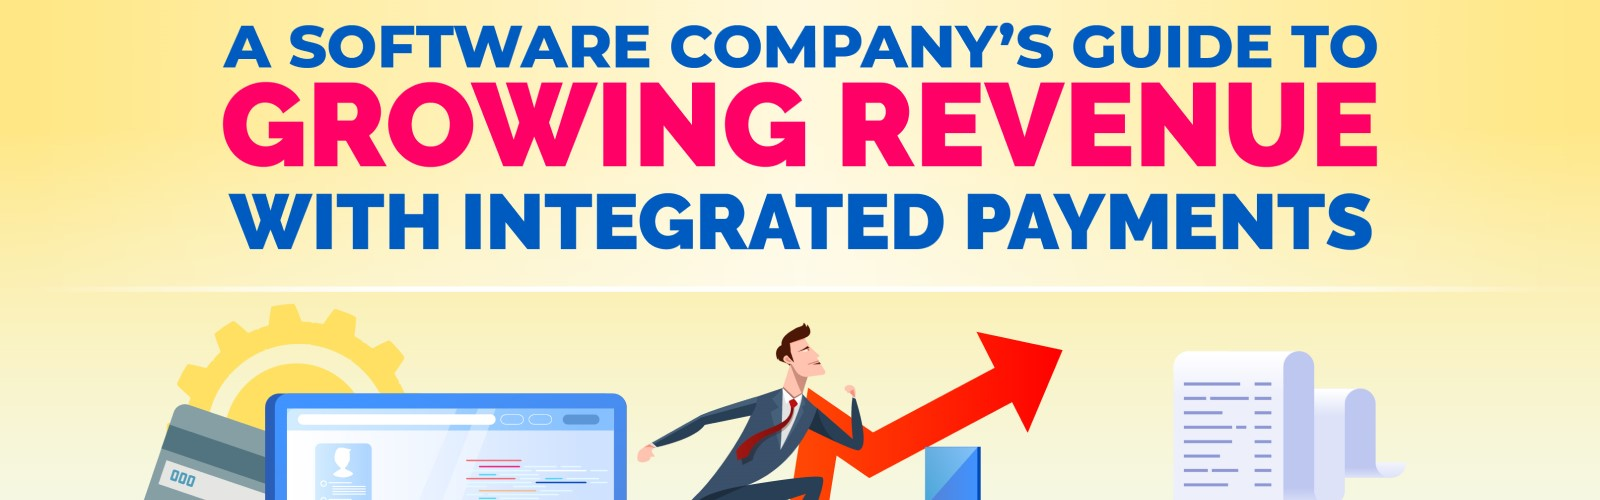 A Software Company's Guide to Growing Revenue with Integrated Payments-Banner Image